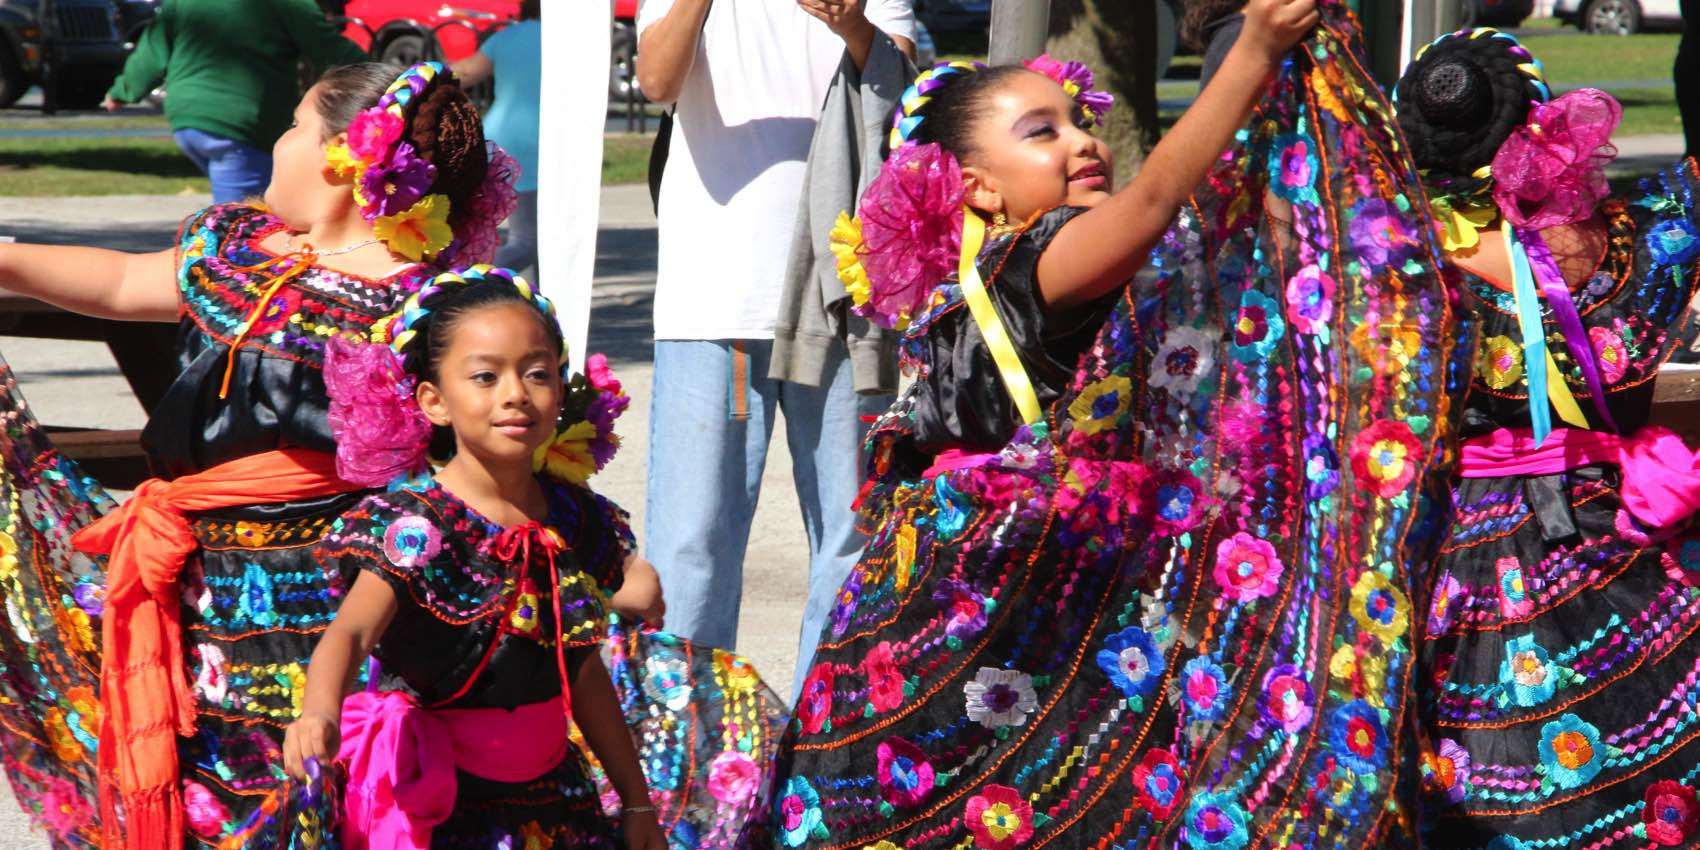 Young Girls Dressed in Baile Folklorico Dresses